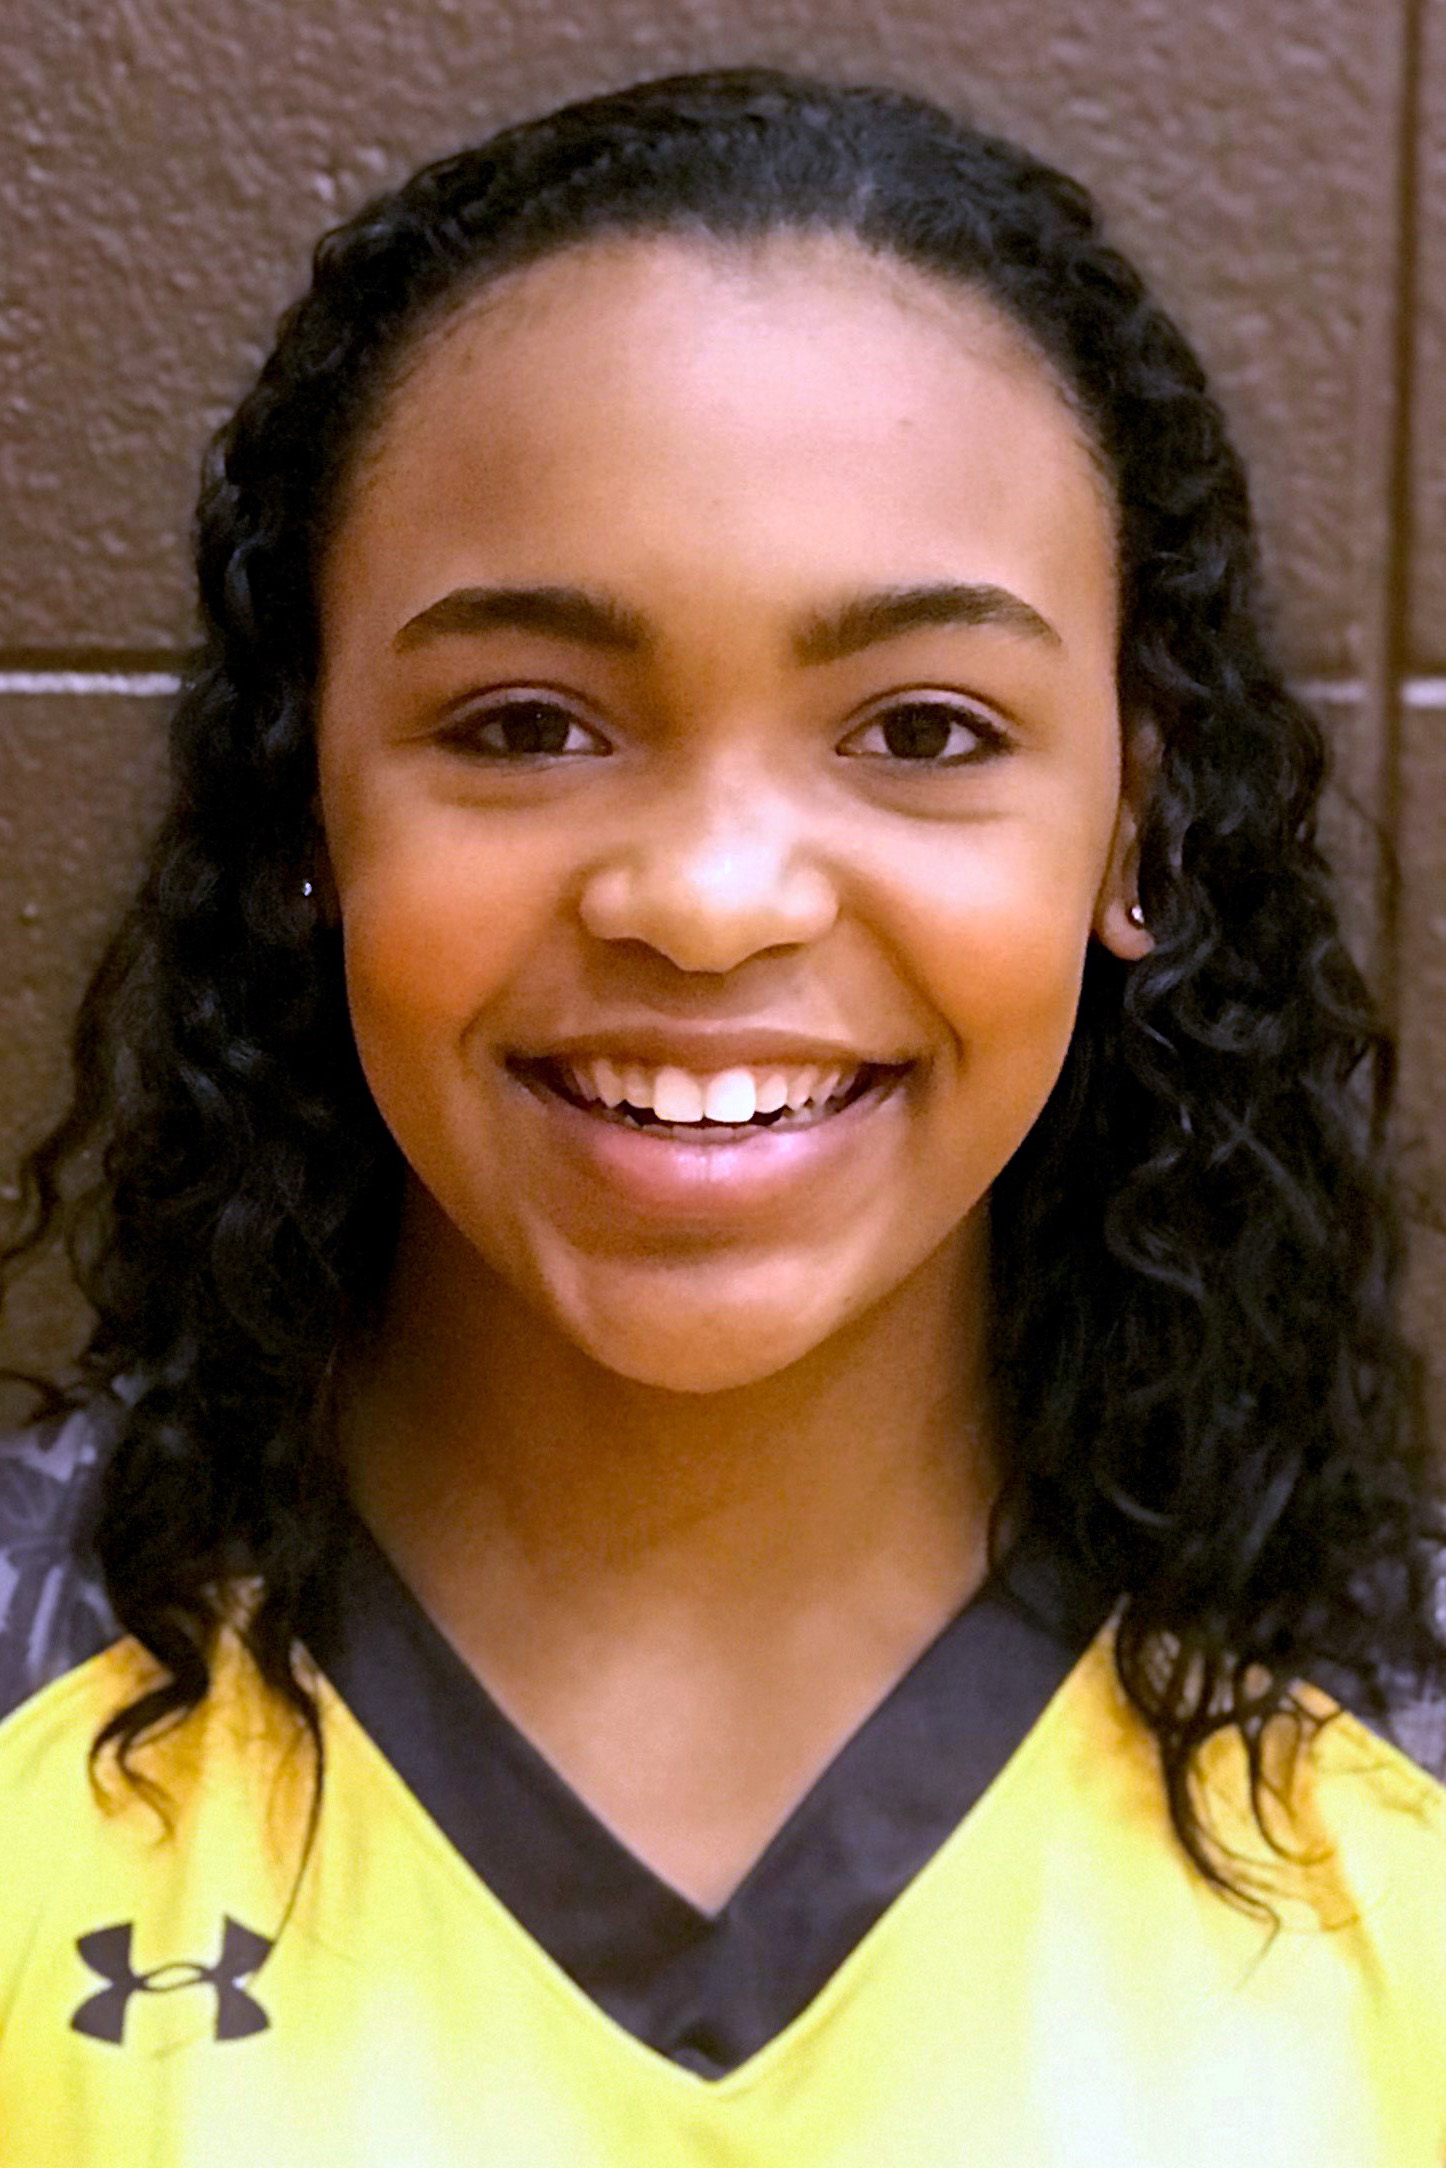 Ysabella Fontleroy 2022 High School Girls' Basketball Profile - ESPN